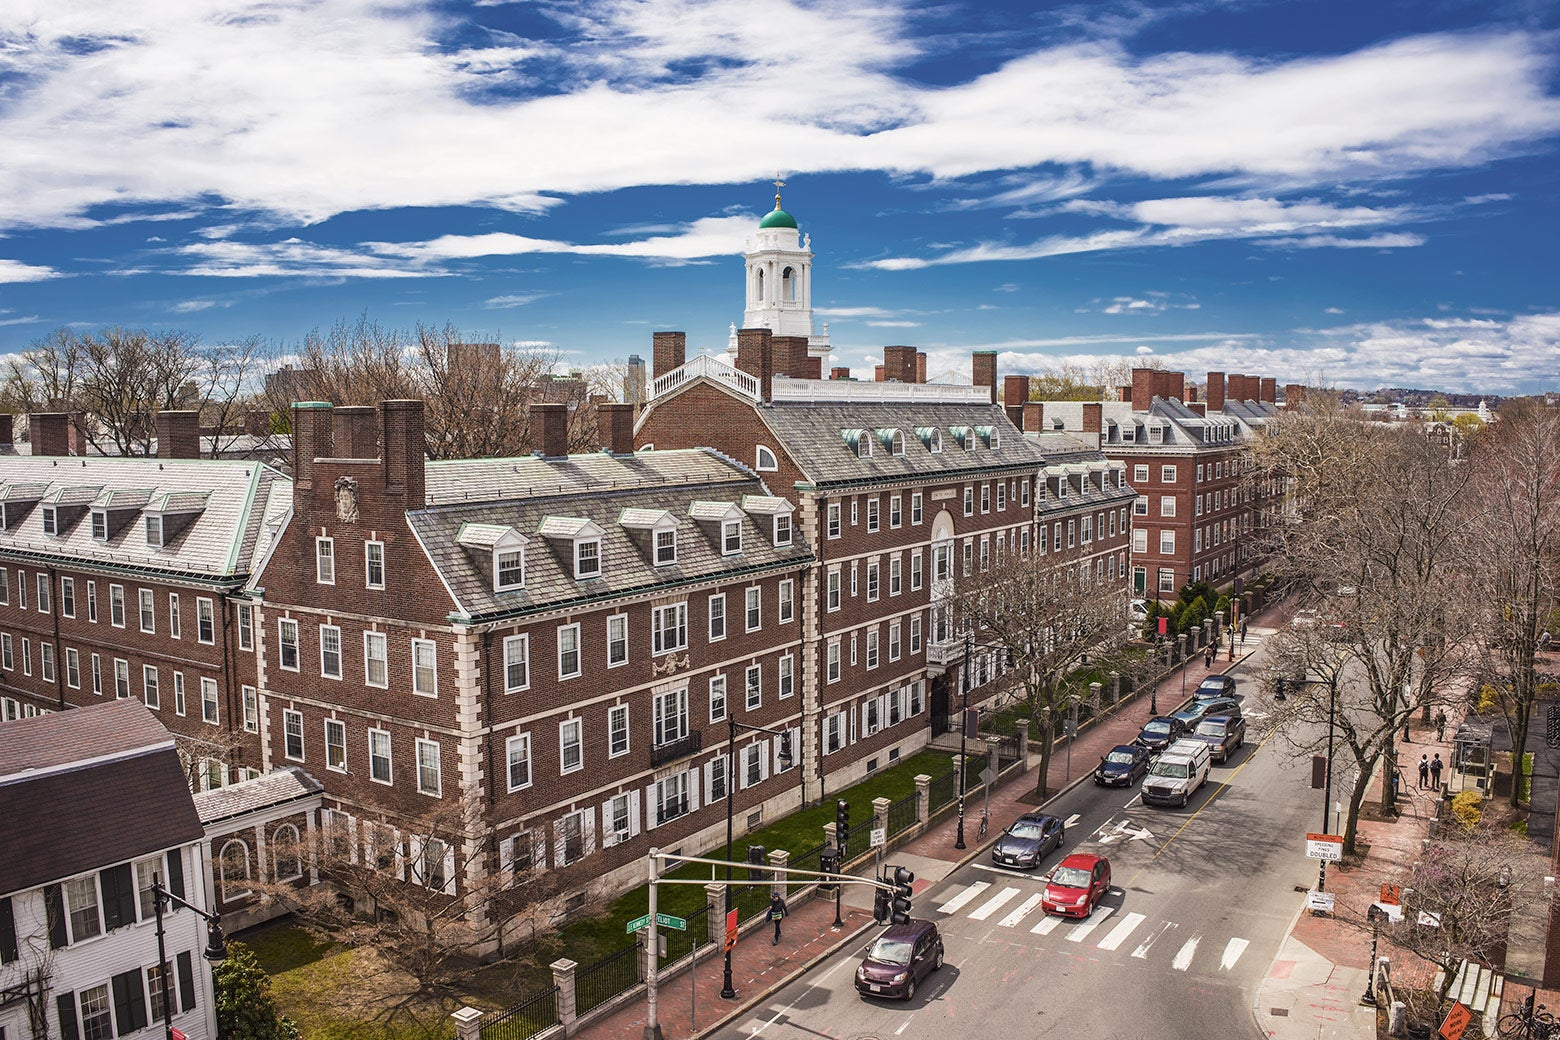 A street and brick building on Harvard's campus.